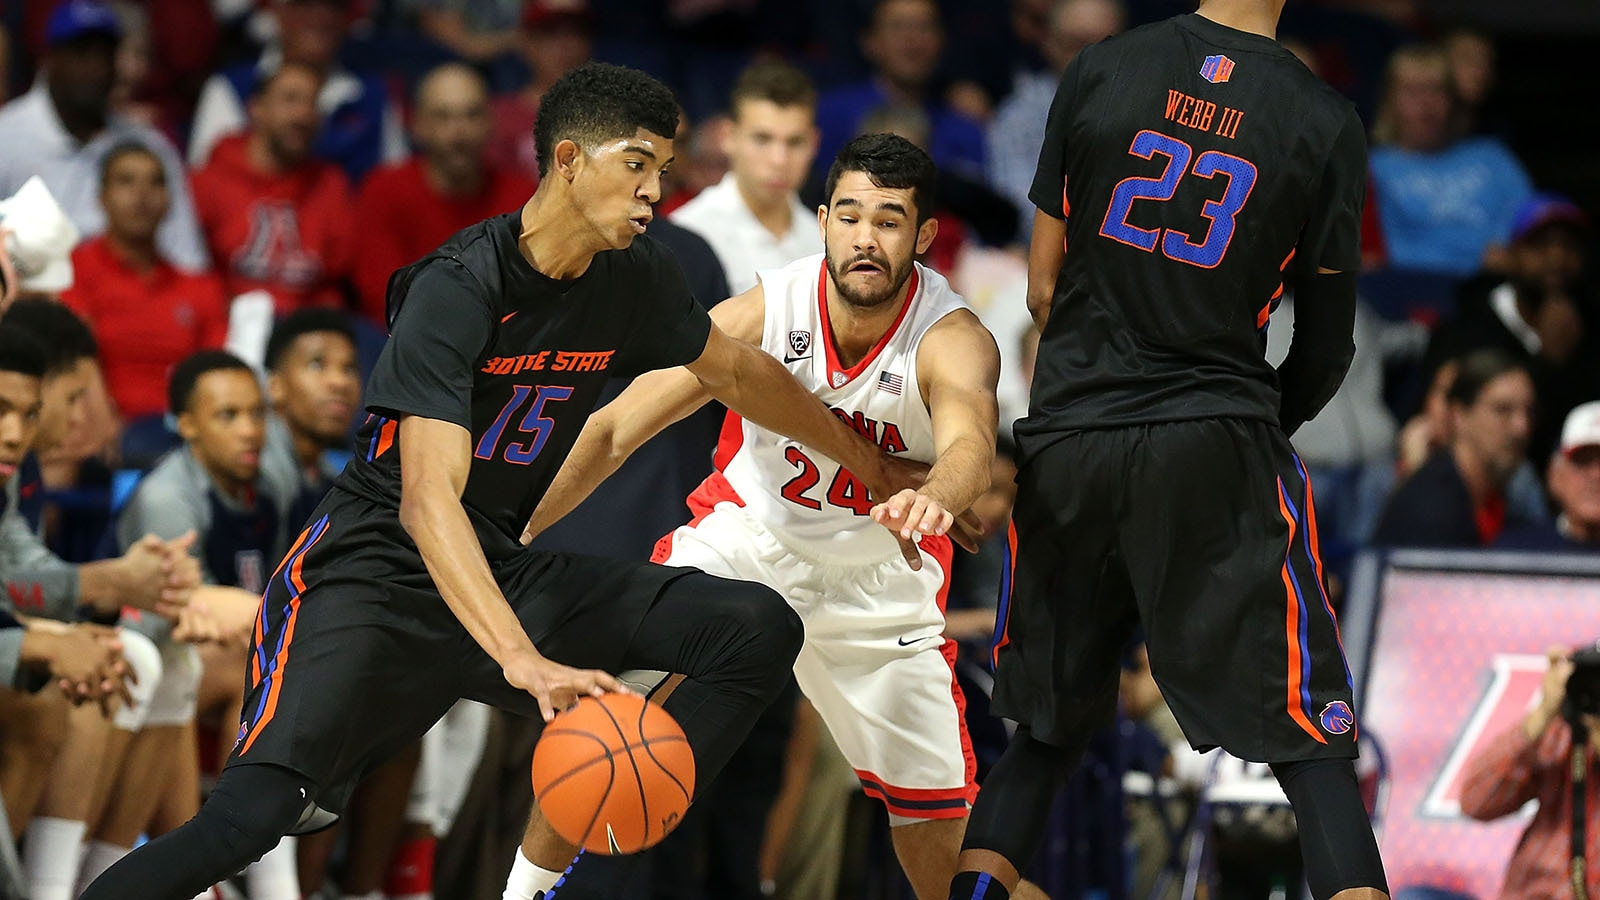 Chandler Hutchison playing for Boise State